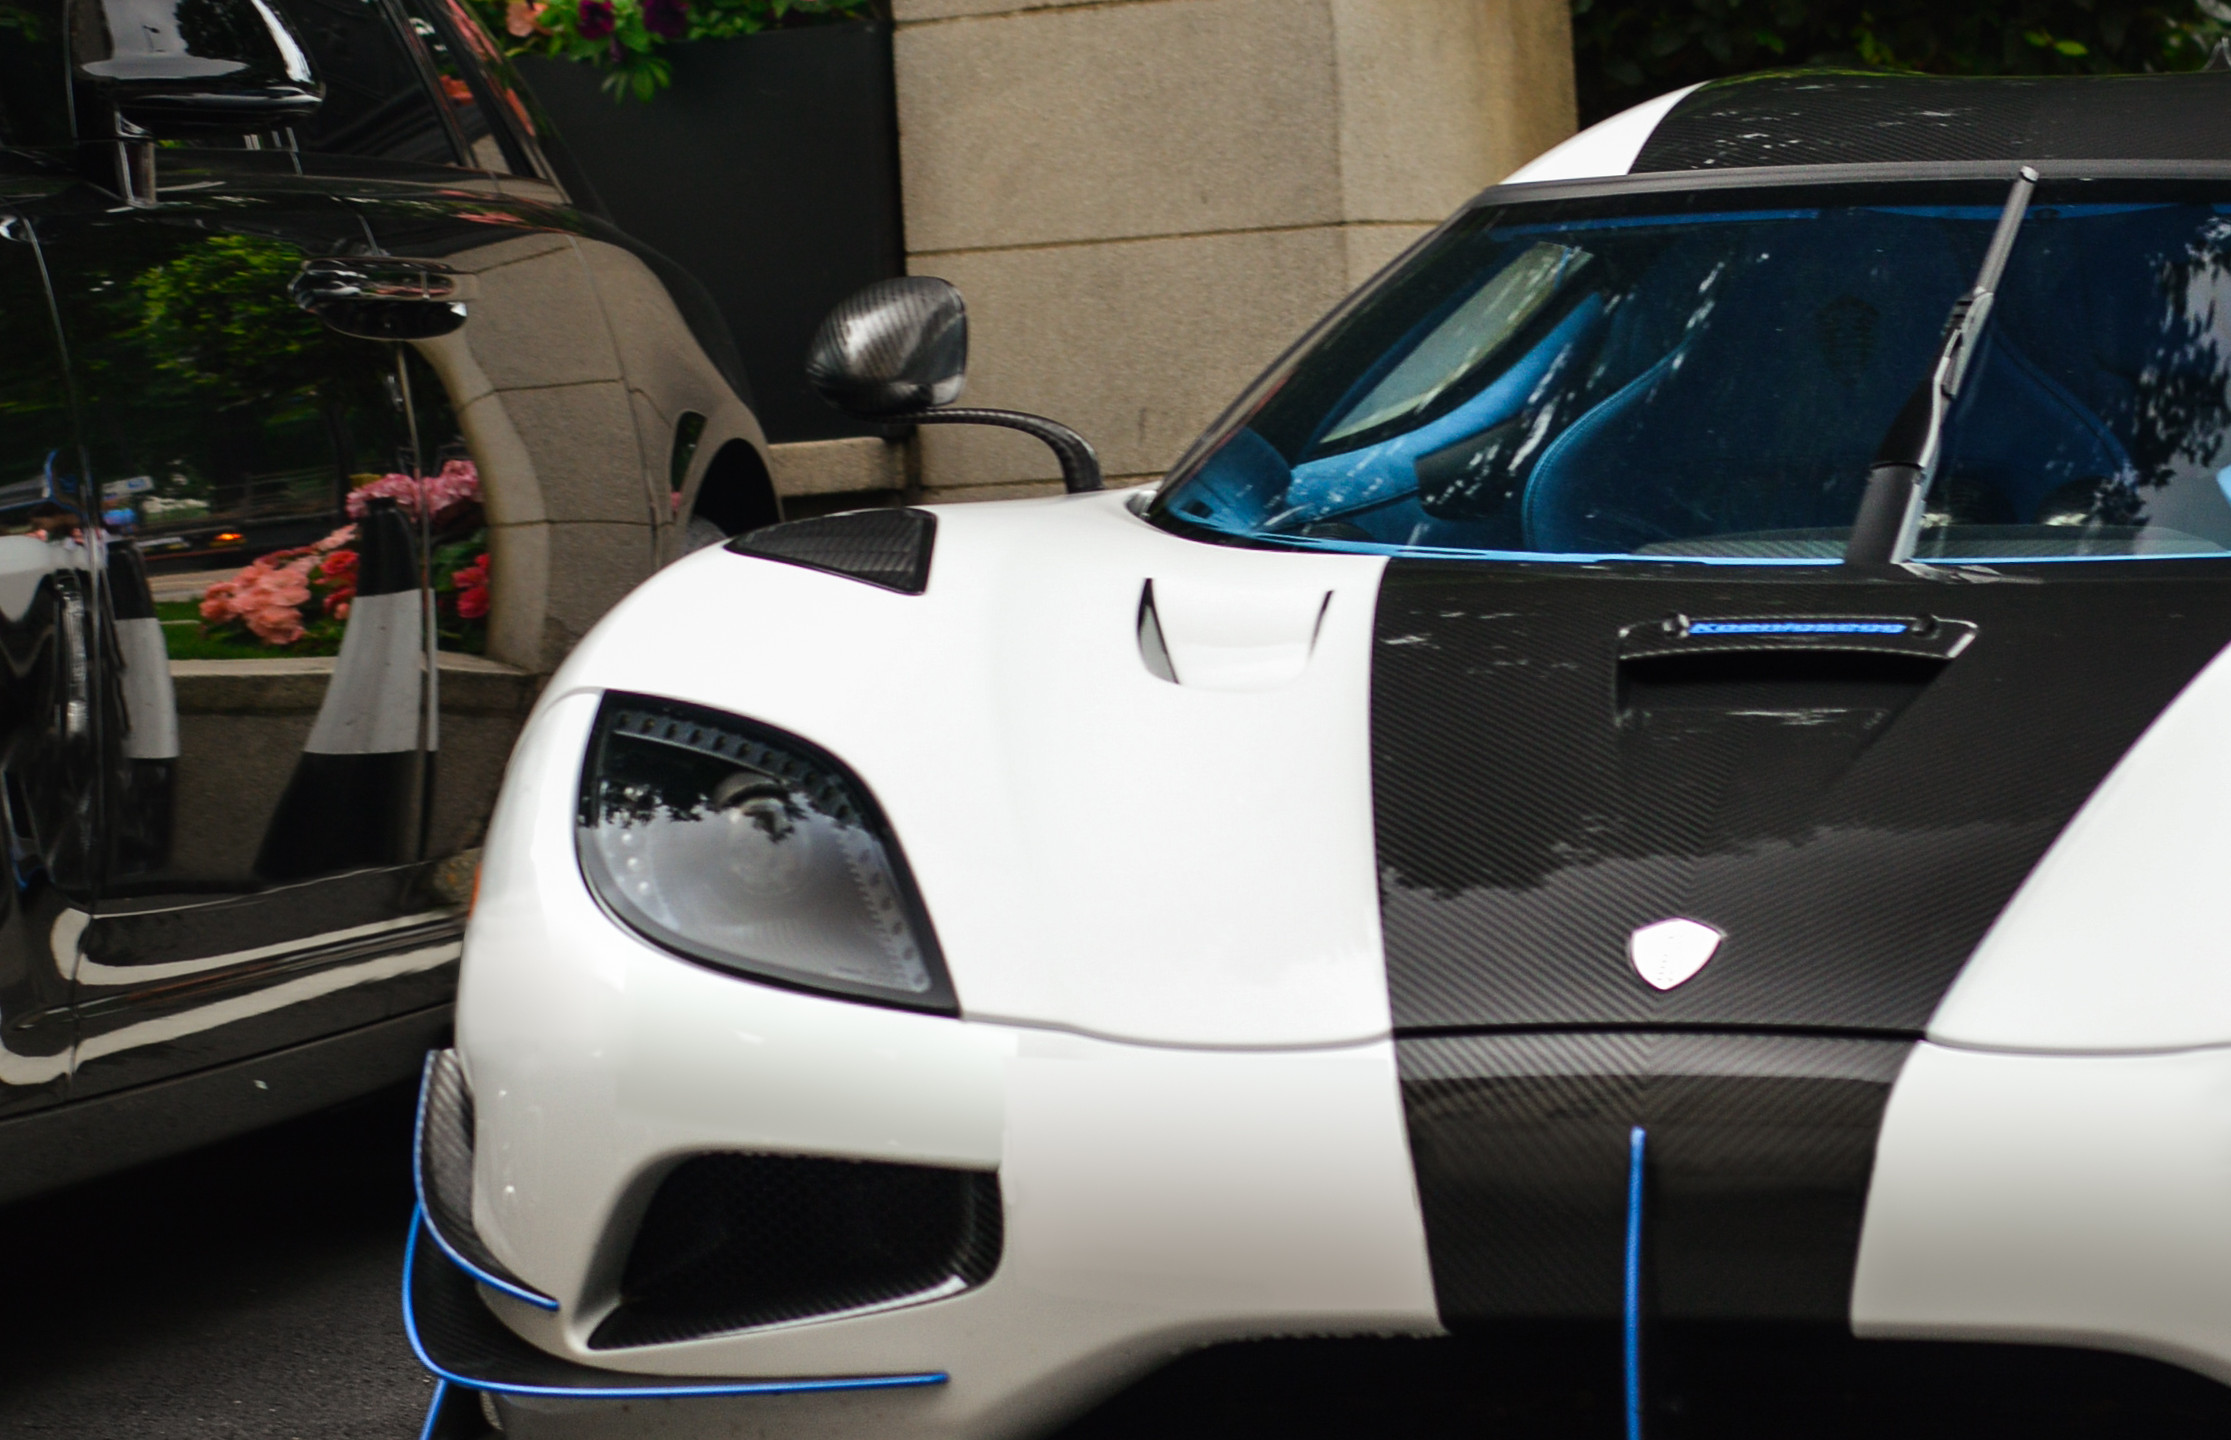 The Koenigsegg Agera 'RS1' in Central London- when it wasn't busy seetting the top speed record!